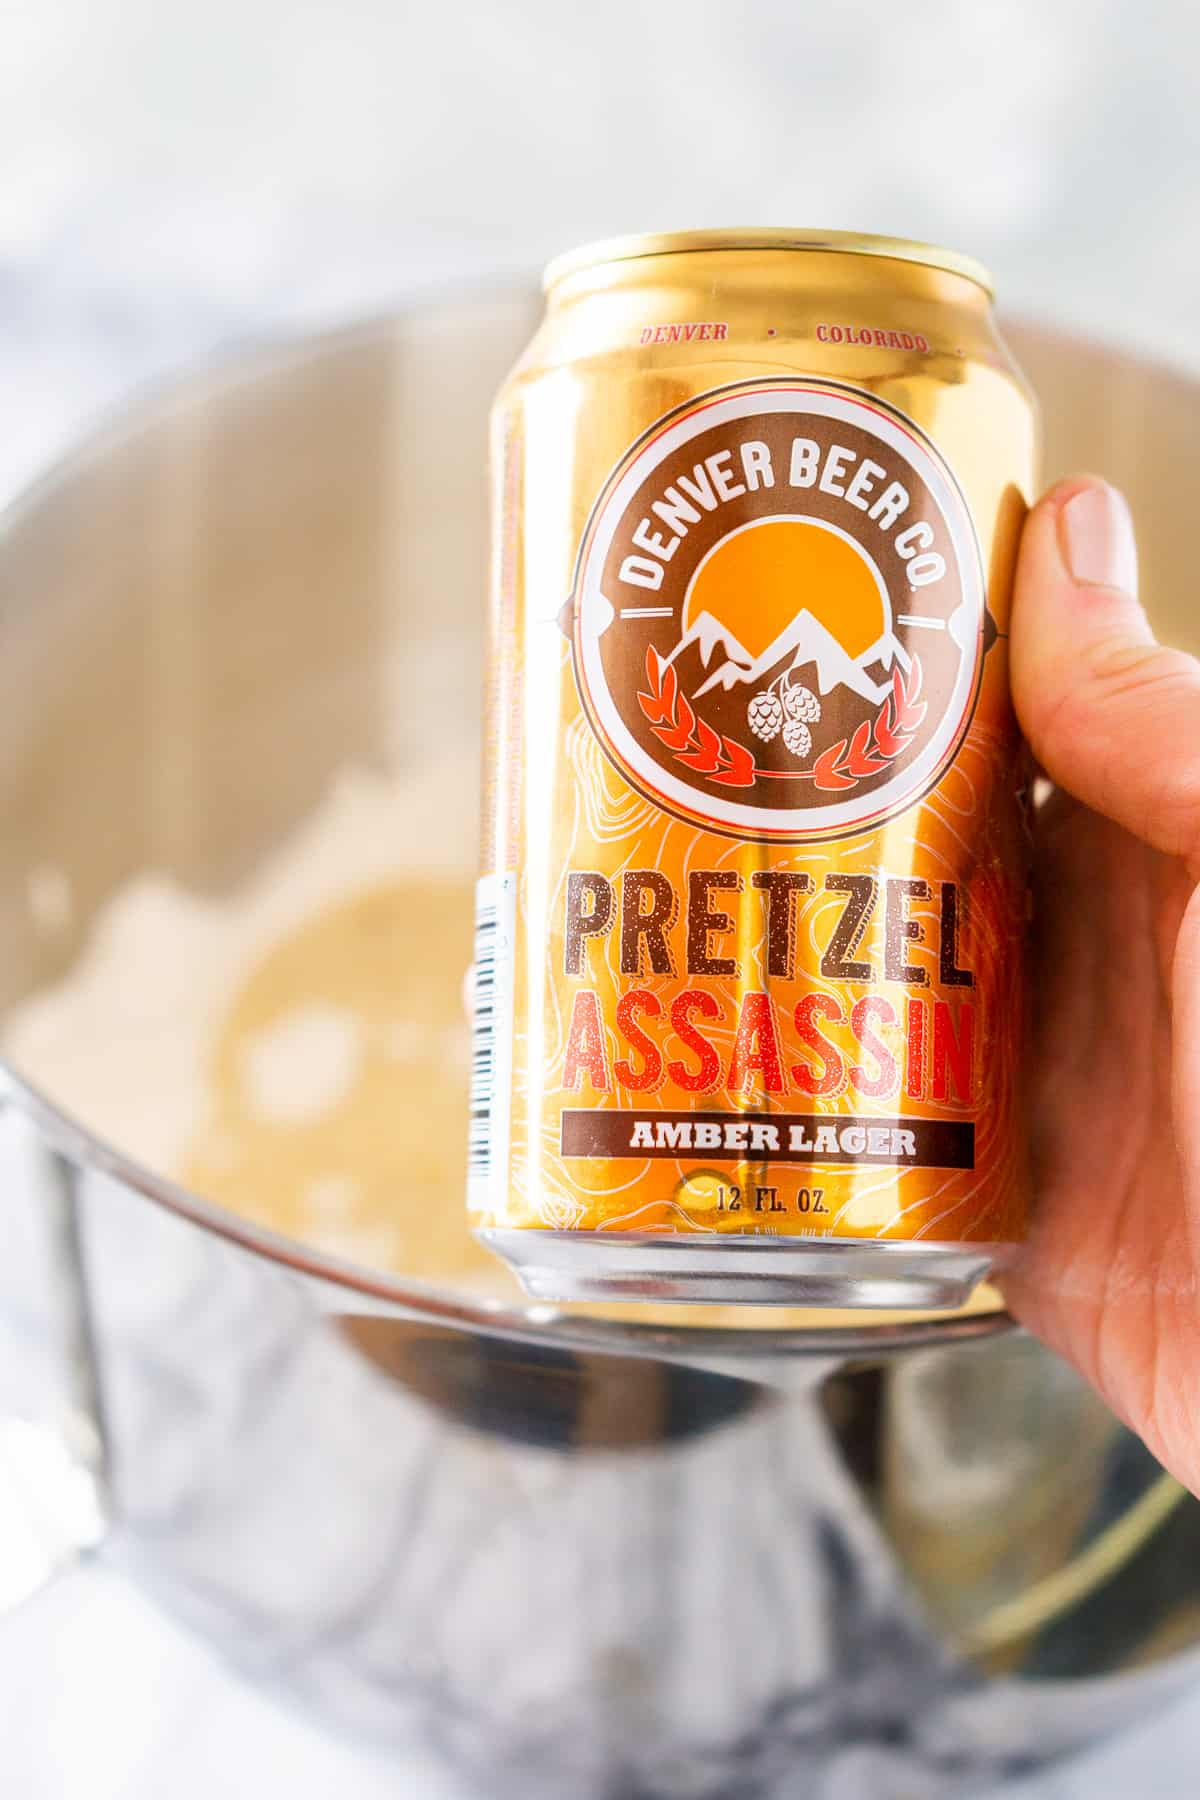 Showing some of the ingredients for this recipe, including the beer used with the rest of the dough in the background.